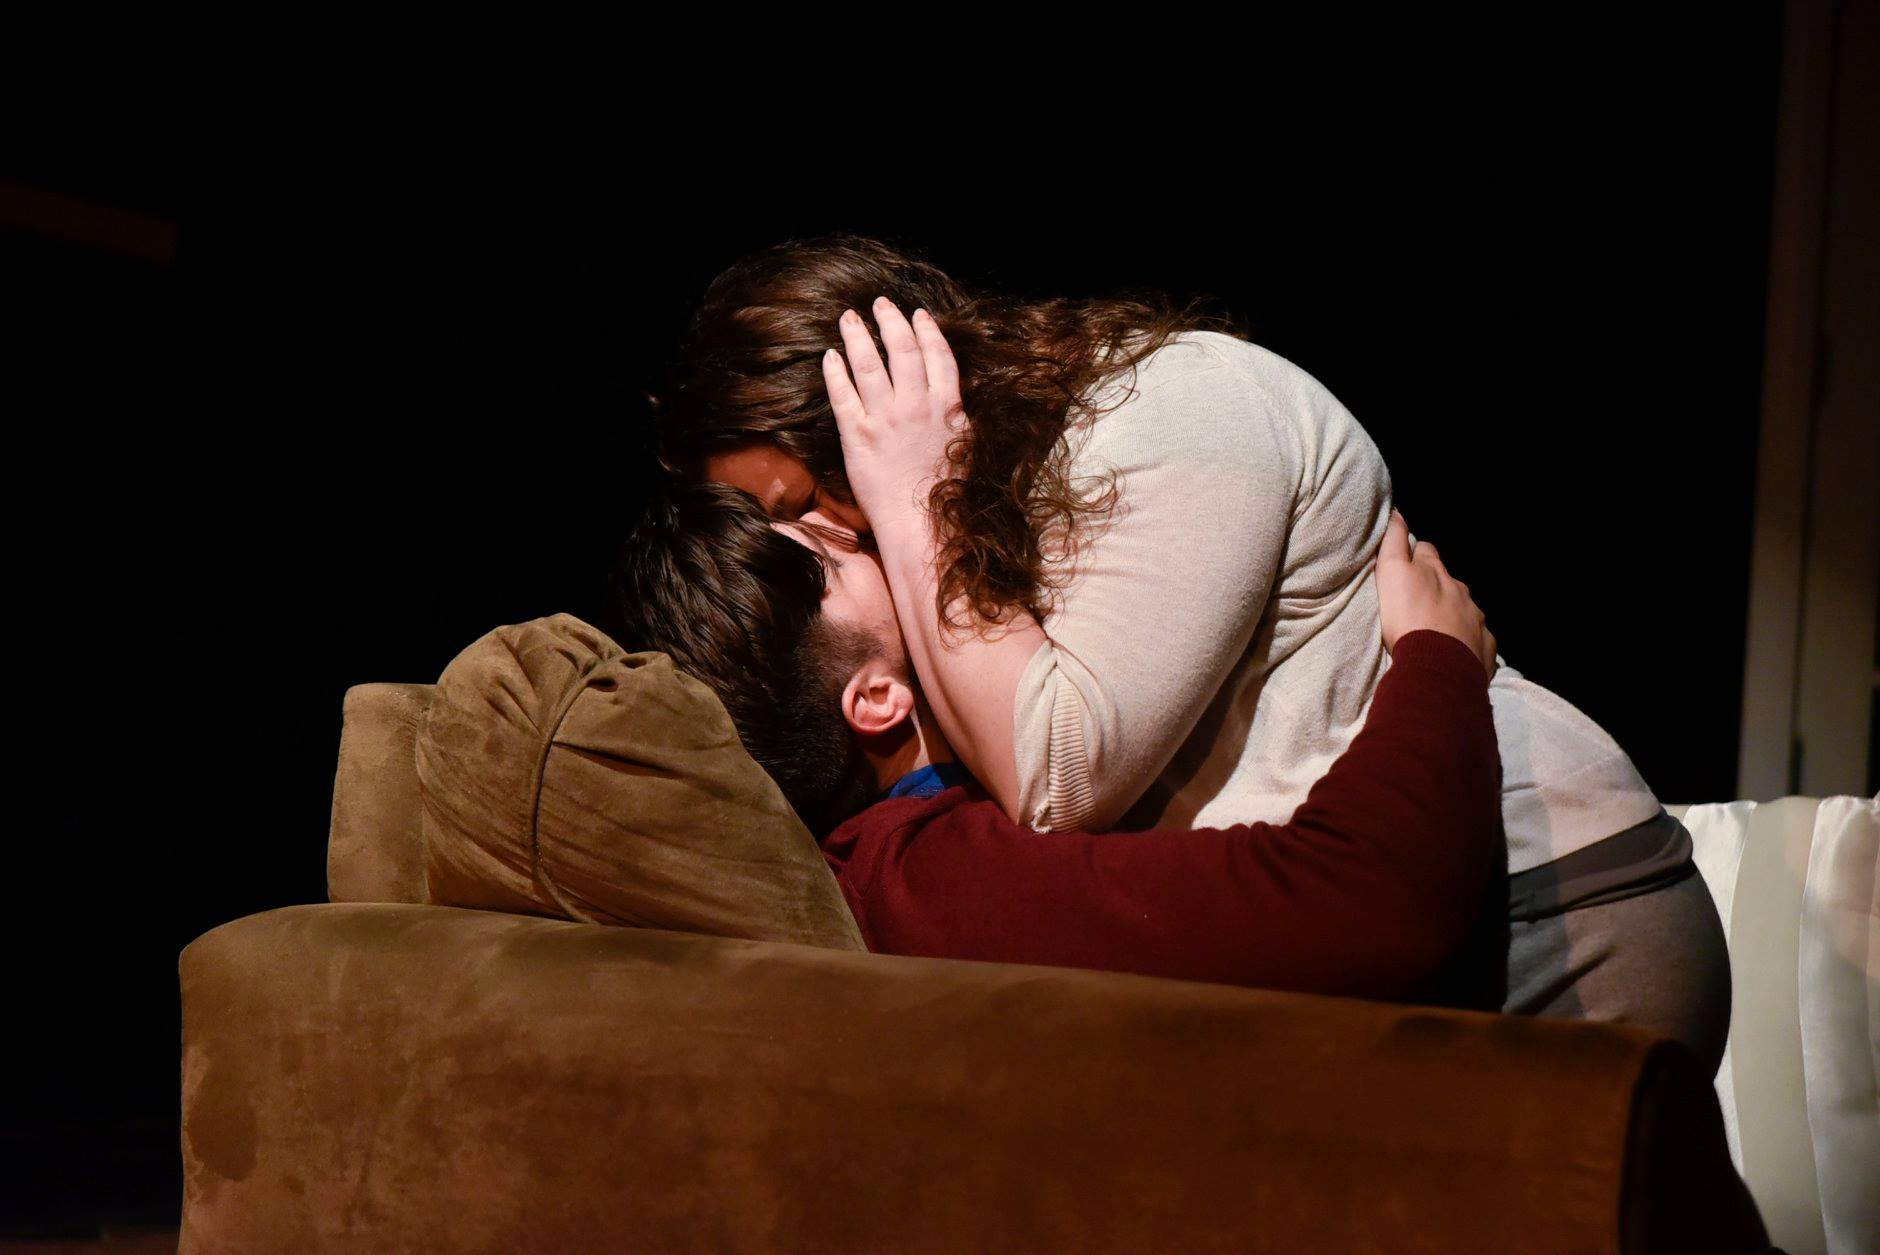 Matthew Lindsay Payne and Kathryne Daniels in Sex with Strangers, now playing at Fells Point Corner Theatre. Photo by David Iden.